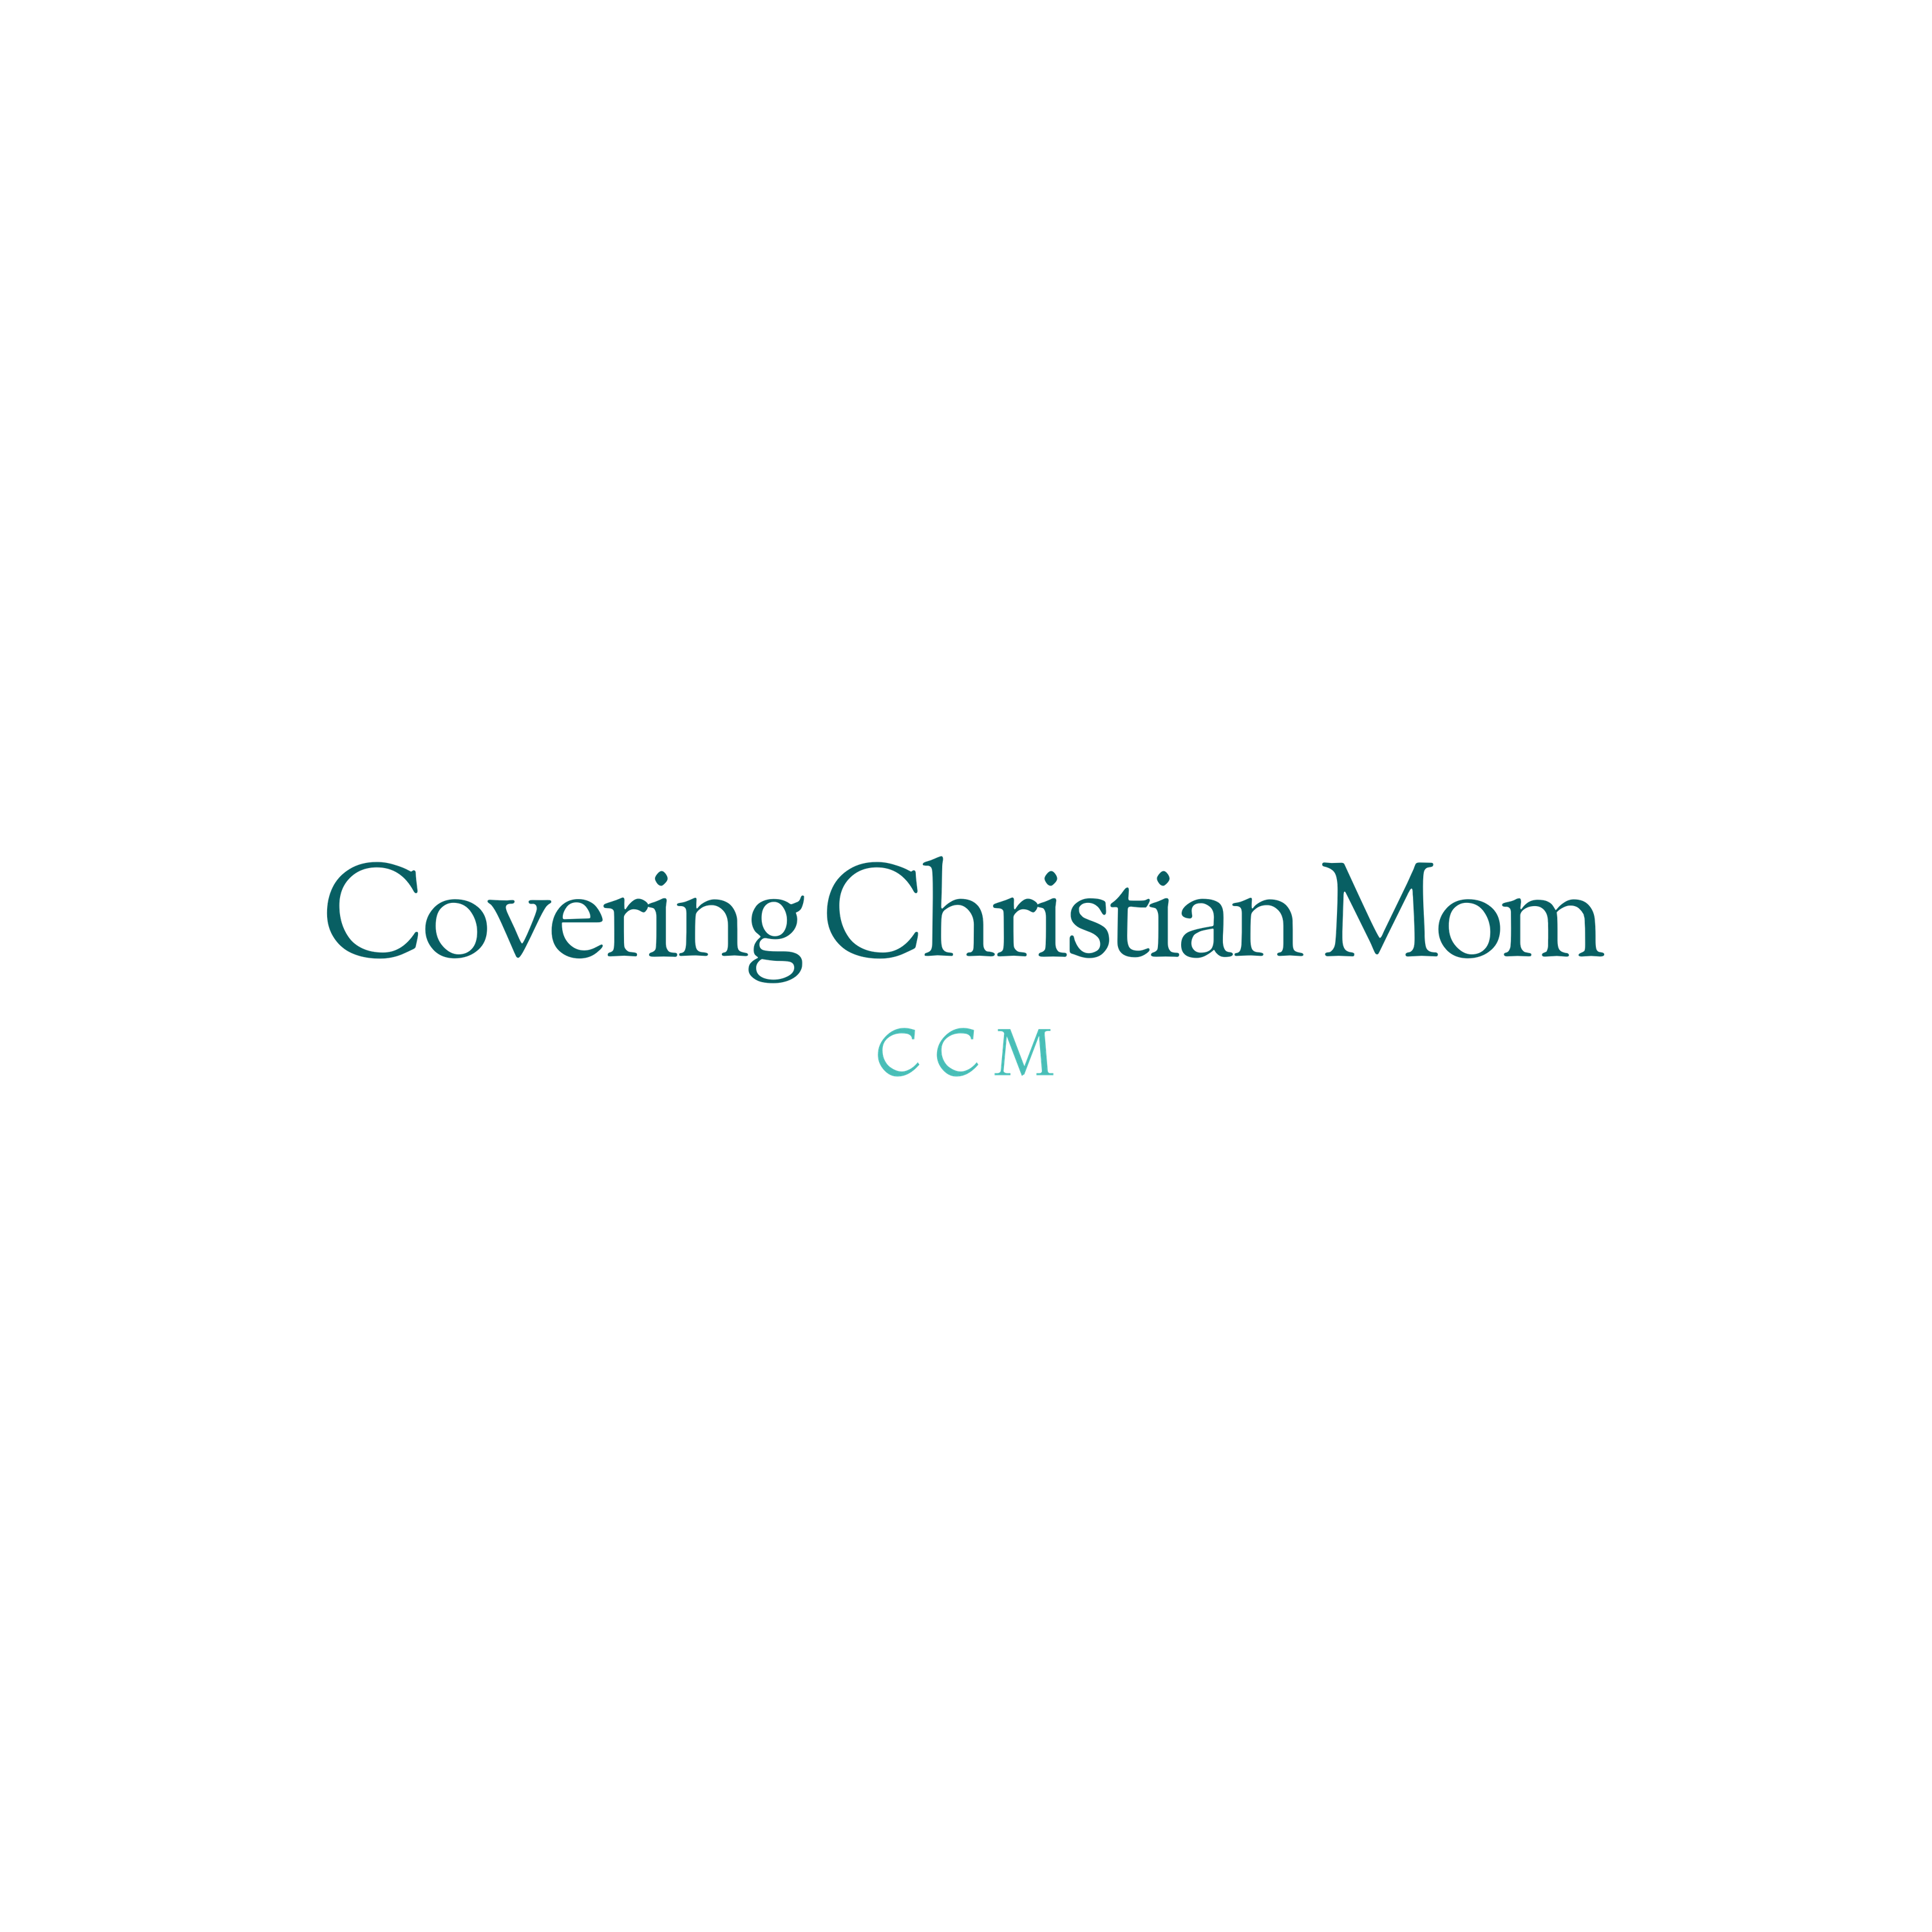 Covering Christian Mom